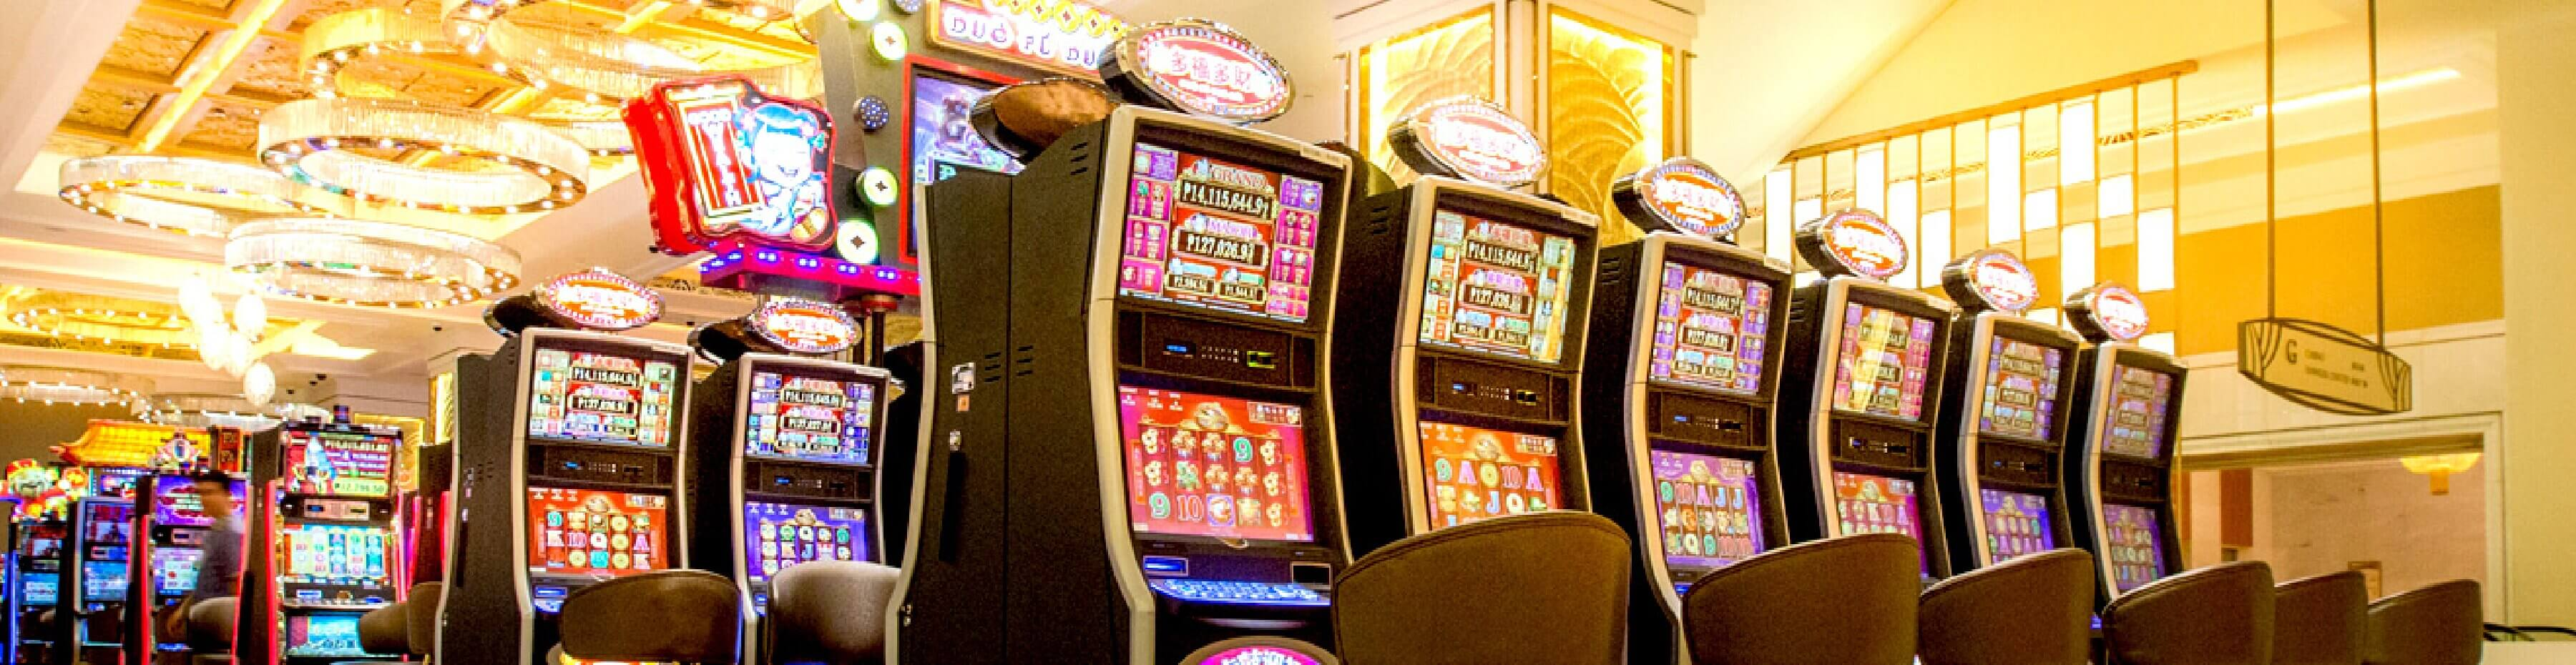 Types of Online Slots Games Singapore